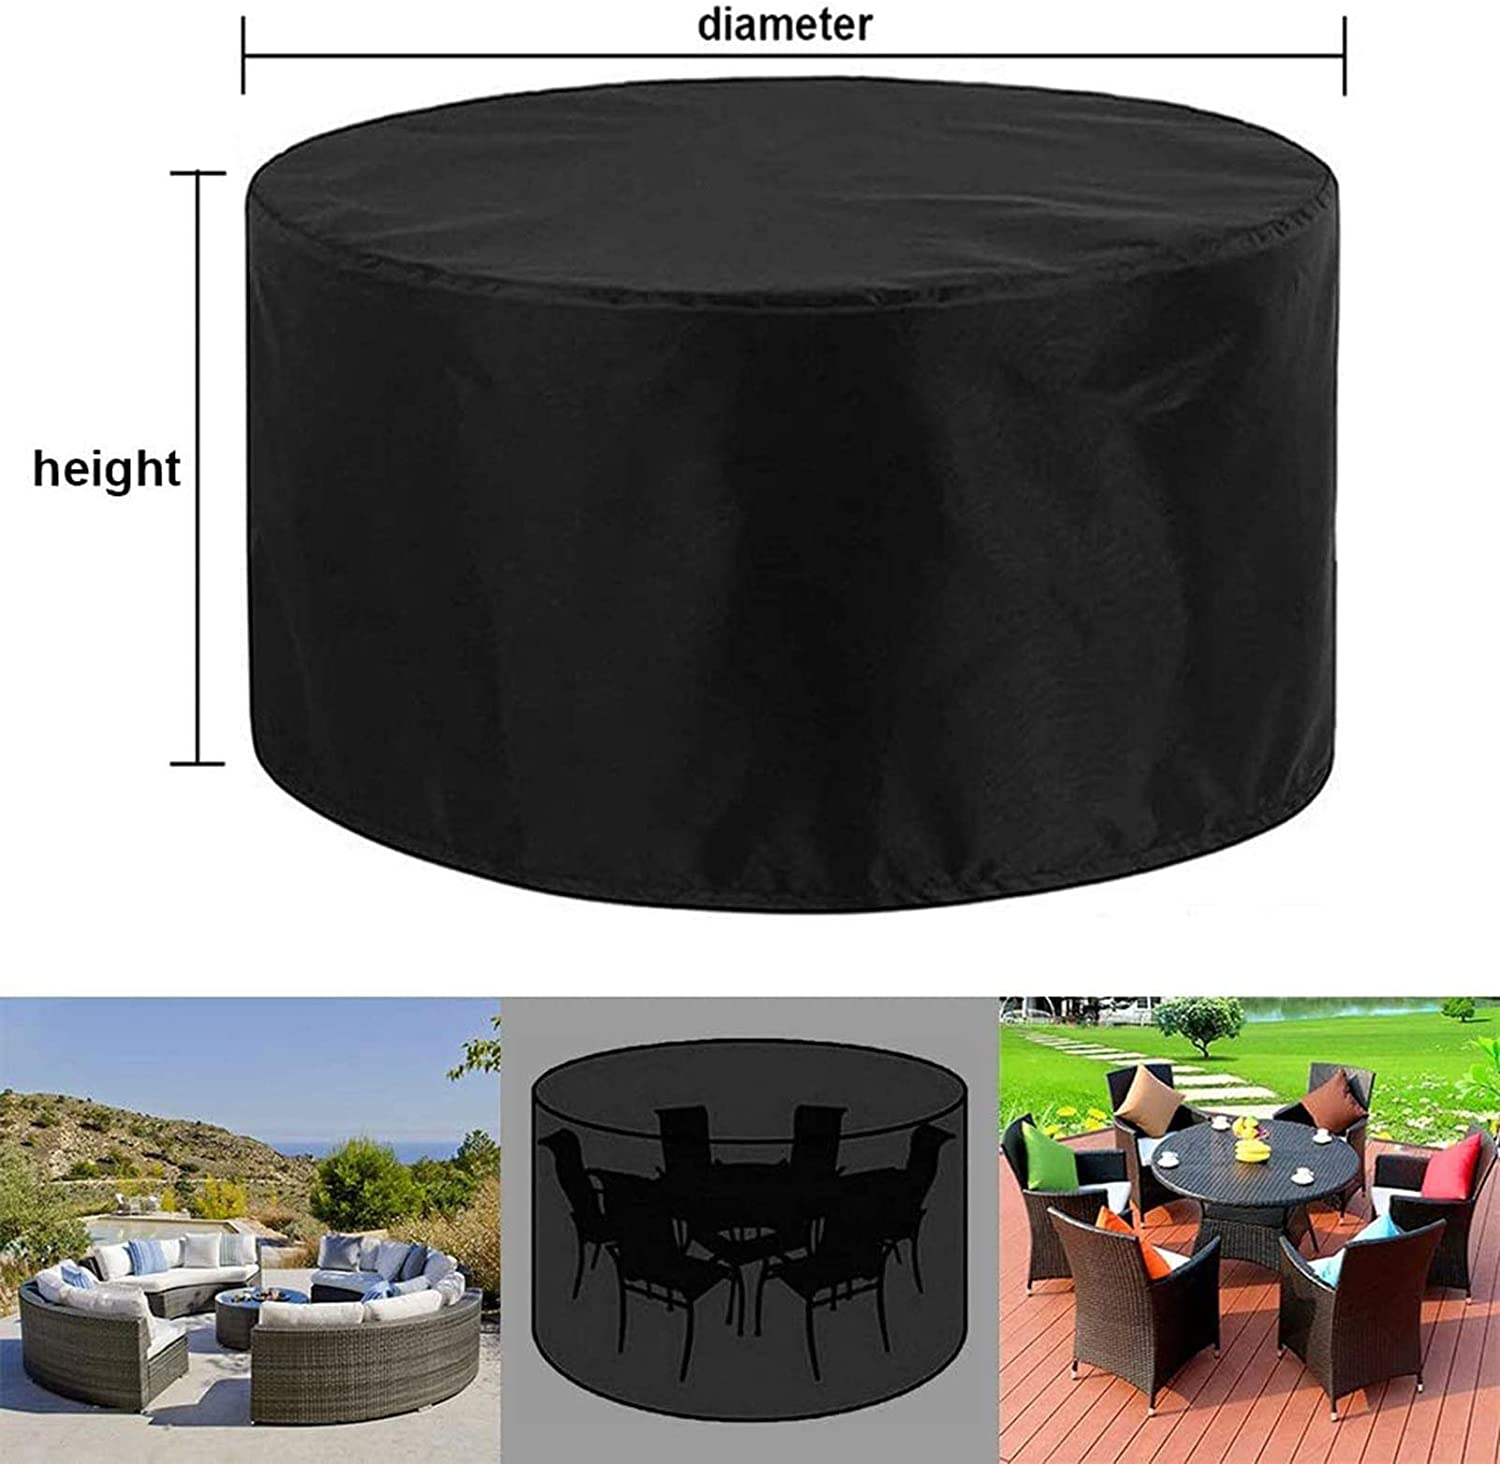 Round Garden Table Cover Heavy Duty Protection Waterproof Windproof Weatherproof/&Anti-UV Outdoor Patio Circular Table Covers QIAOH Garden Furniture Covers 420D 60x42cm